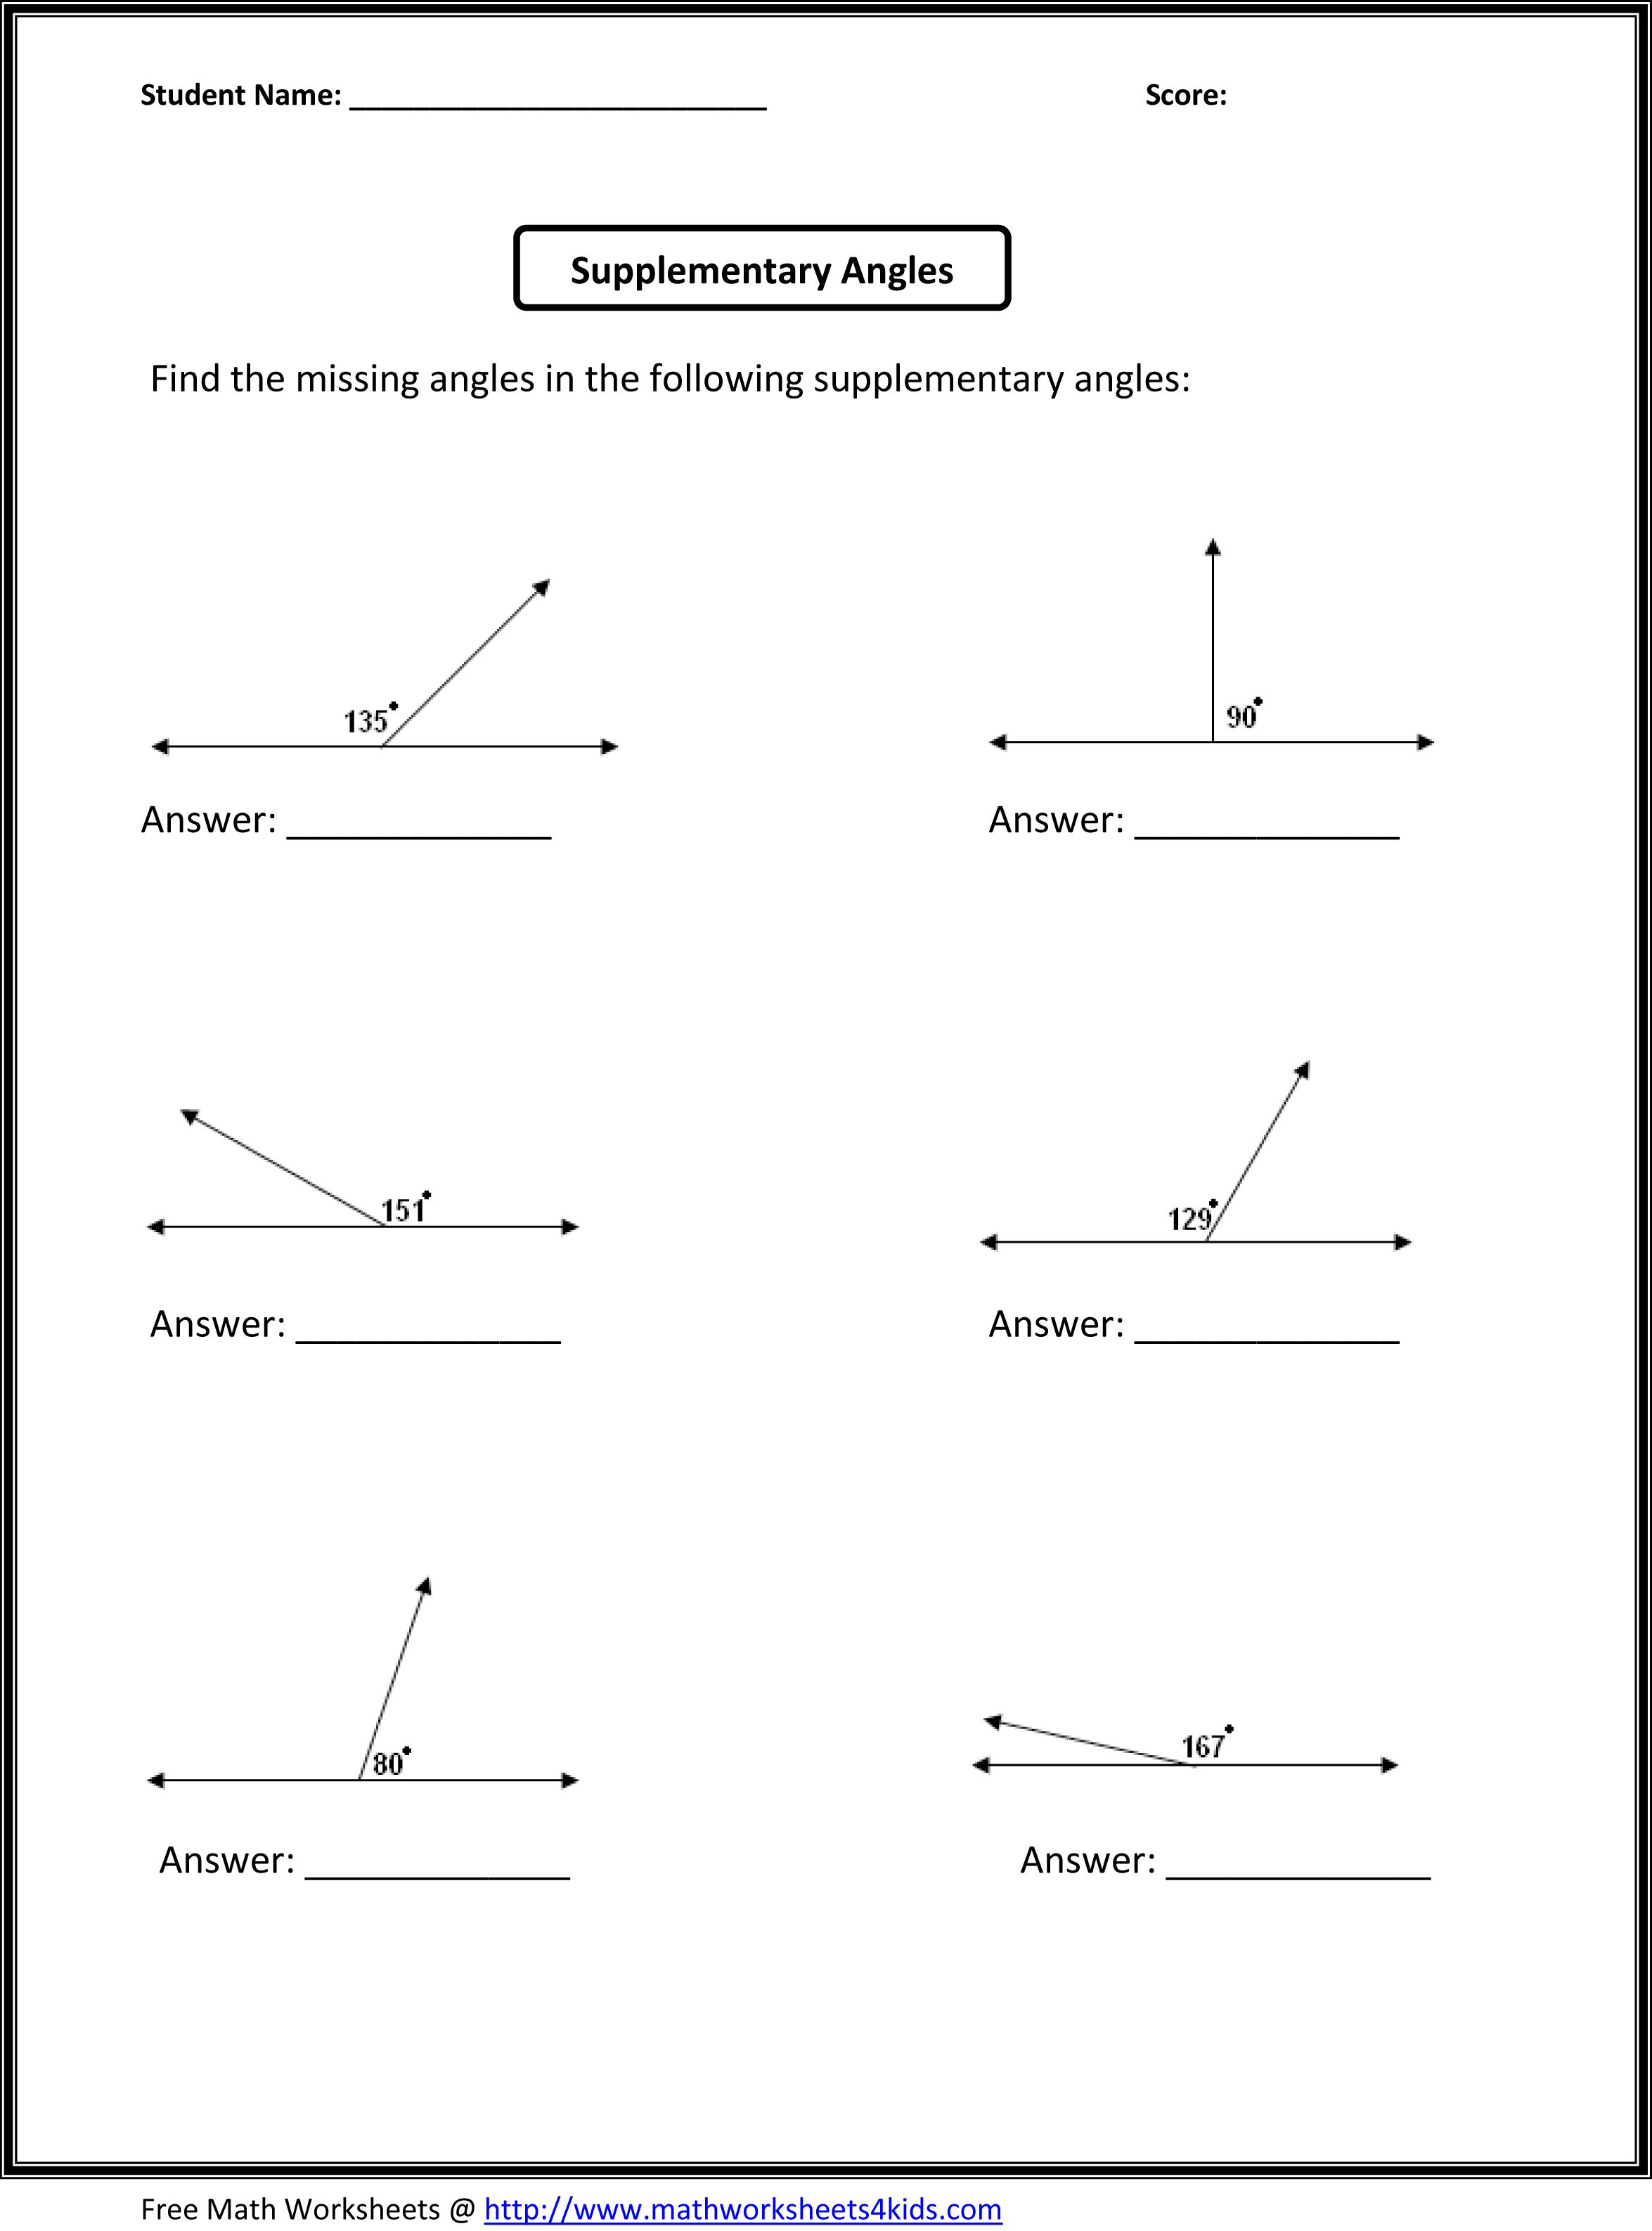 worksheet Angle Worksheets printables complementary supplementary angles worksheet precommunity worksheets stem sheets exam